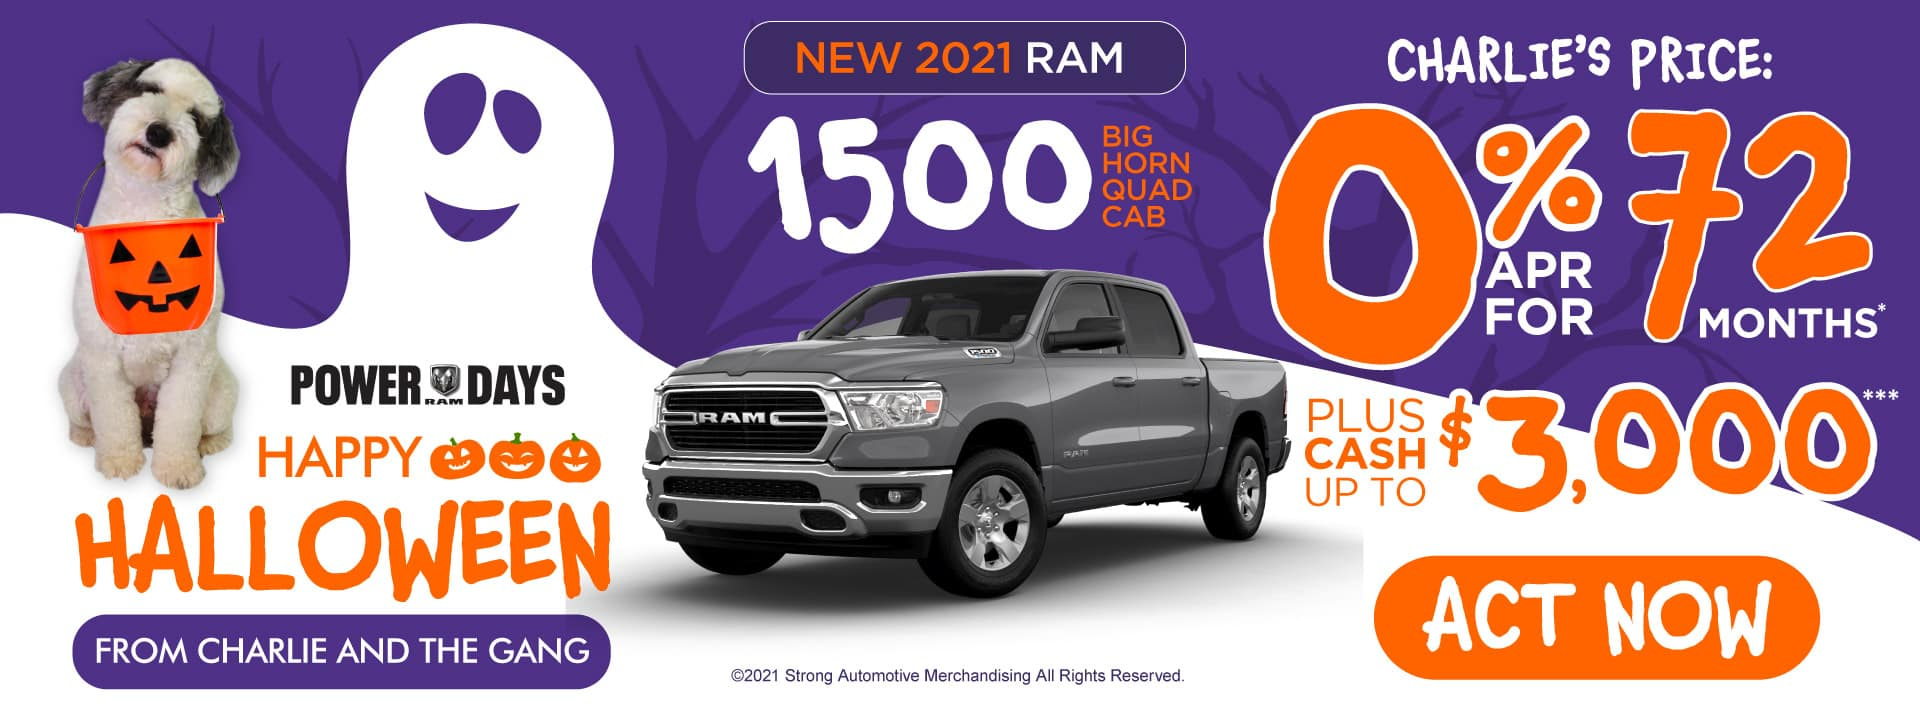 New 2021 RAM 1500 Big Horn Quad Cab - 0% APR for 72 months - ACT NOW